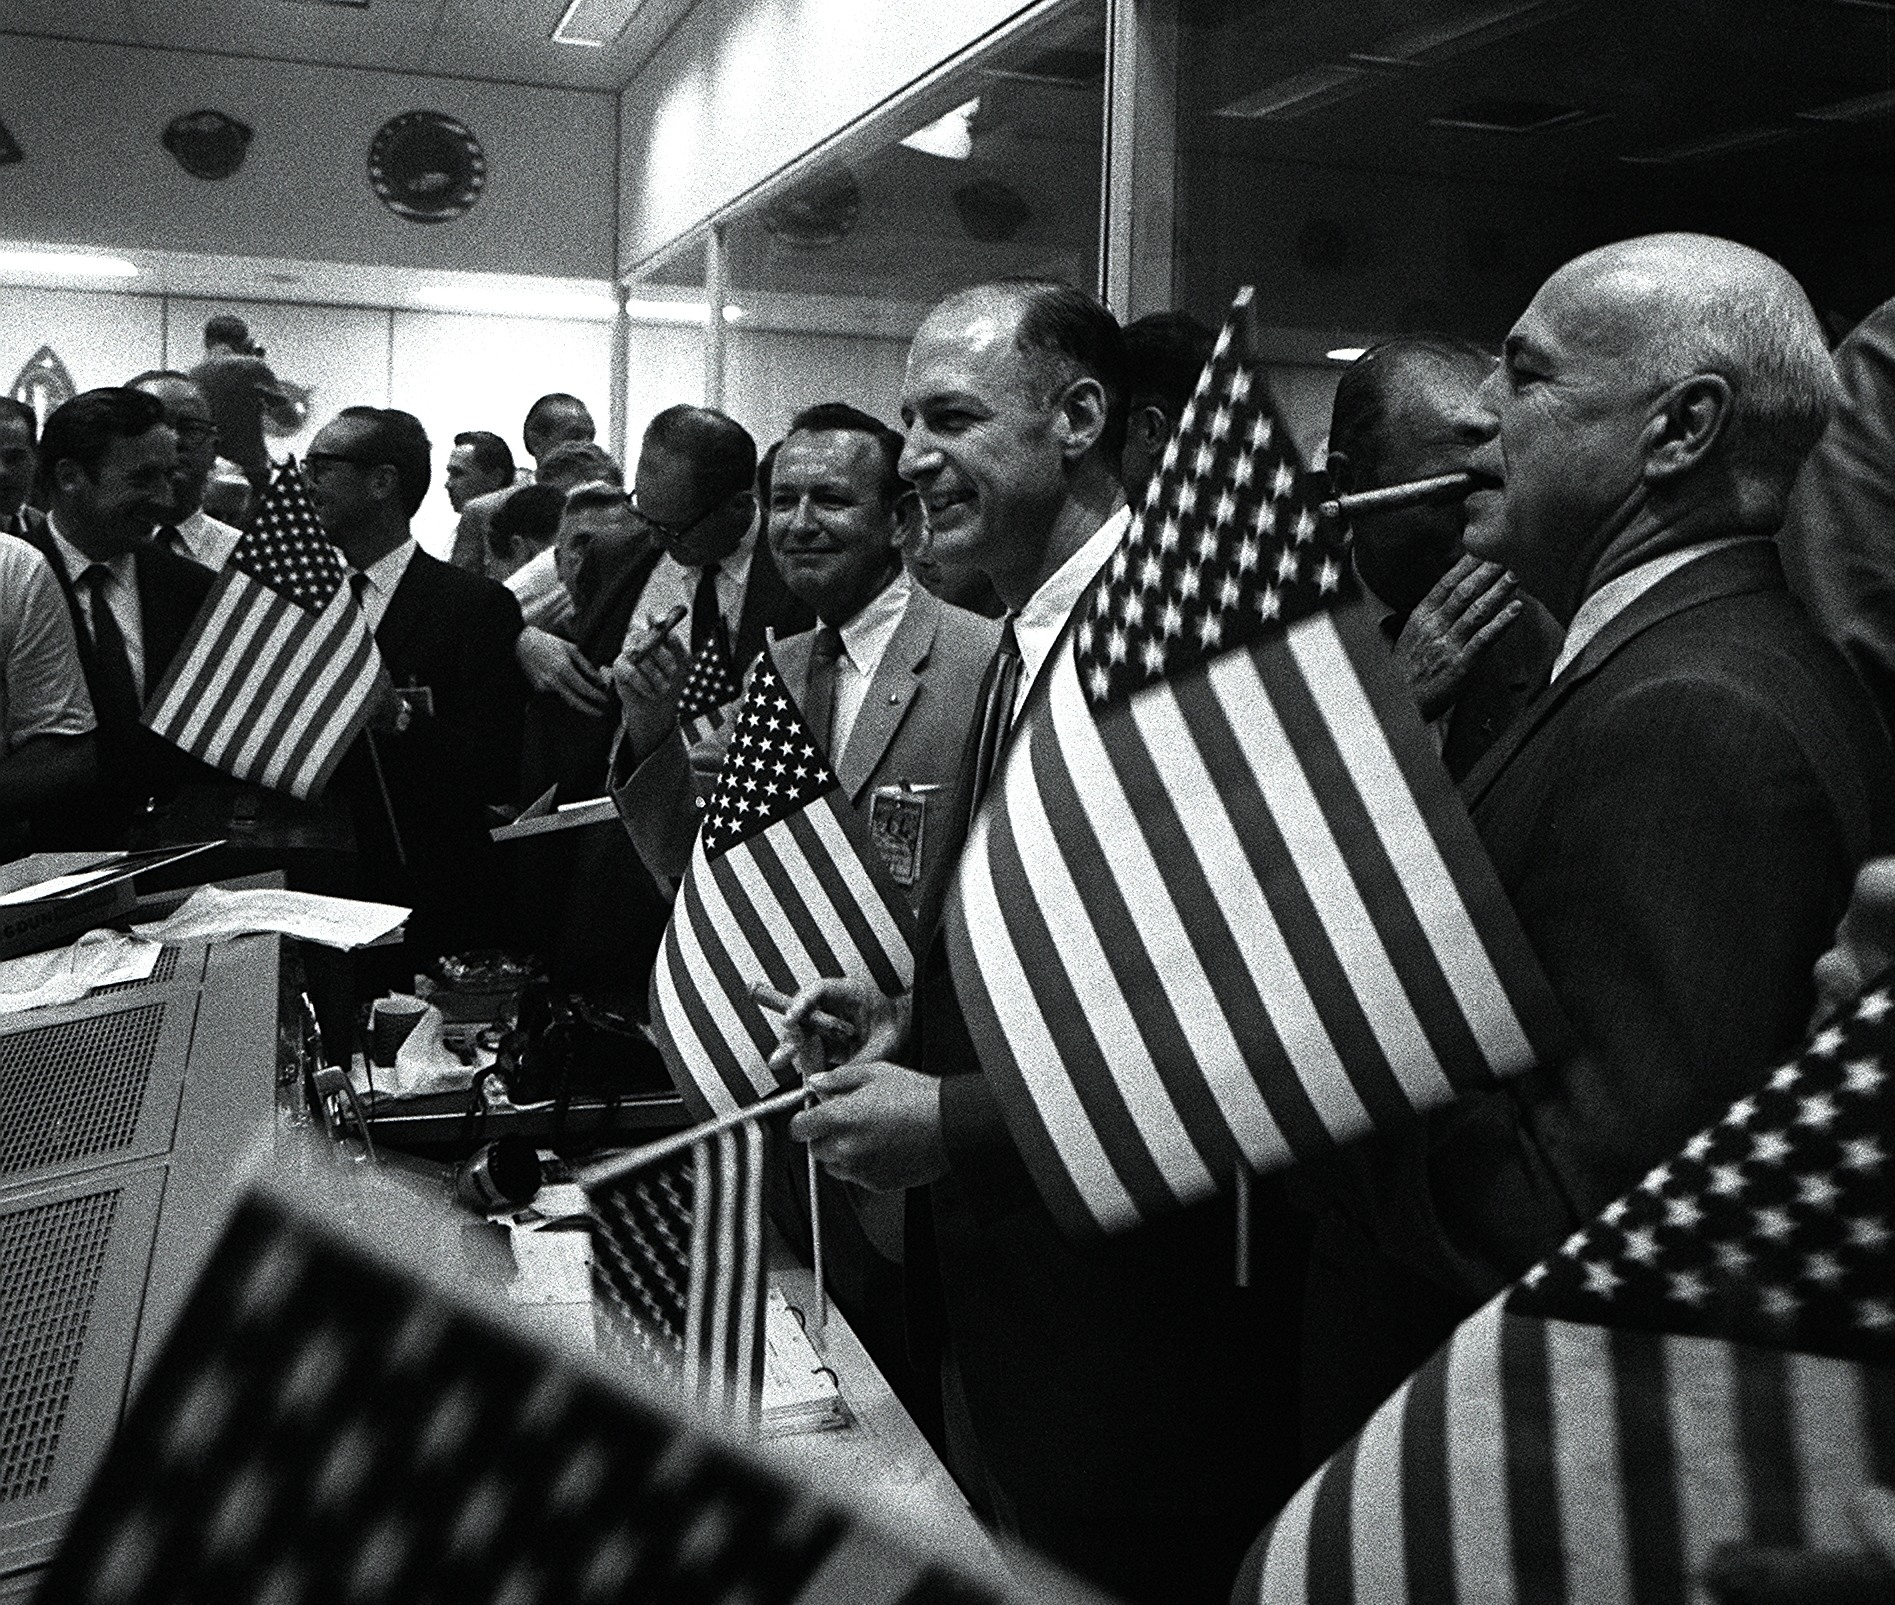 Key officials celebrate the successful conclusion of the Apollo 11 lunar landing mission. Robert R Gilruth is at the far right, George Low, Manager, Apollo Spacecraft Program, is next to him and Chris Kraft Director of Flight Operations is in the center.